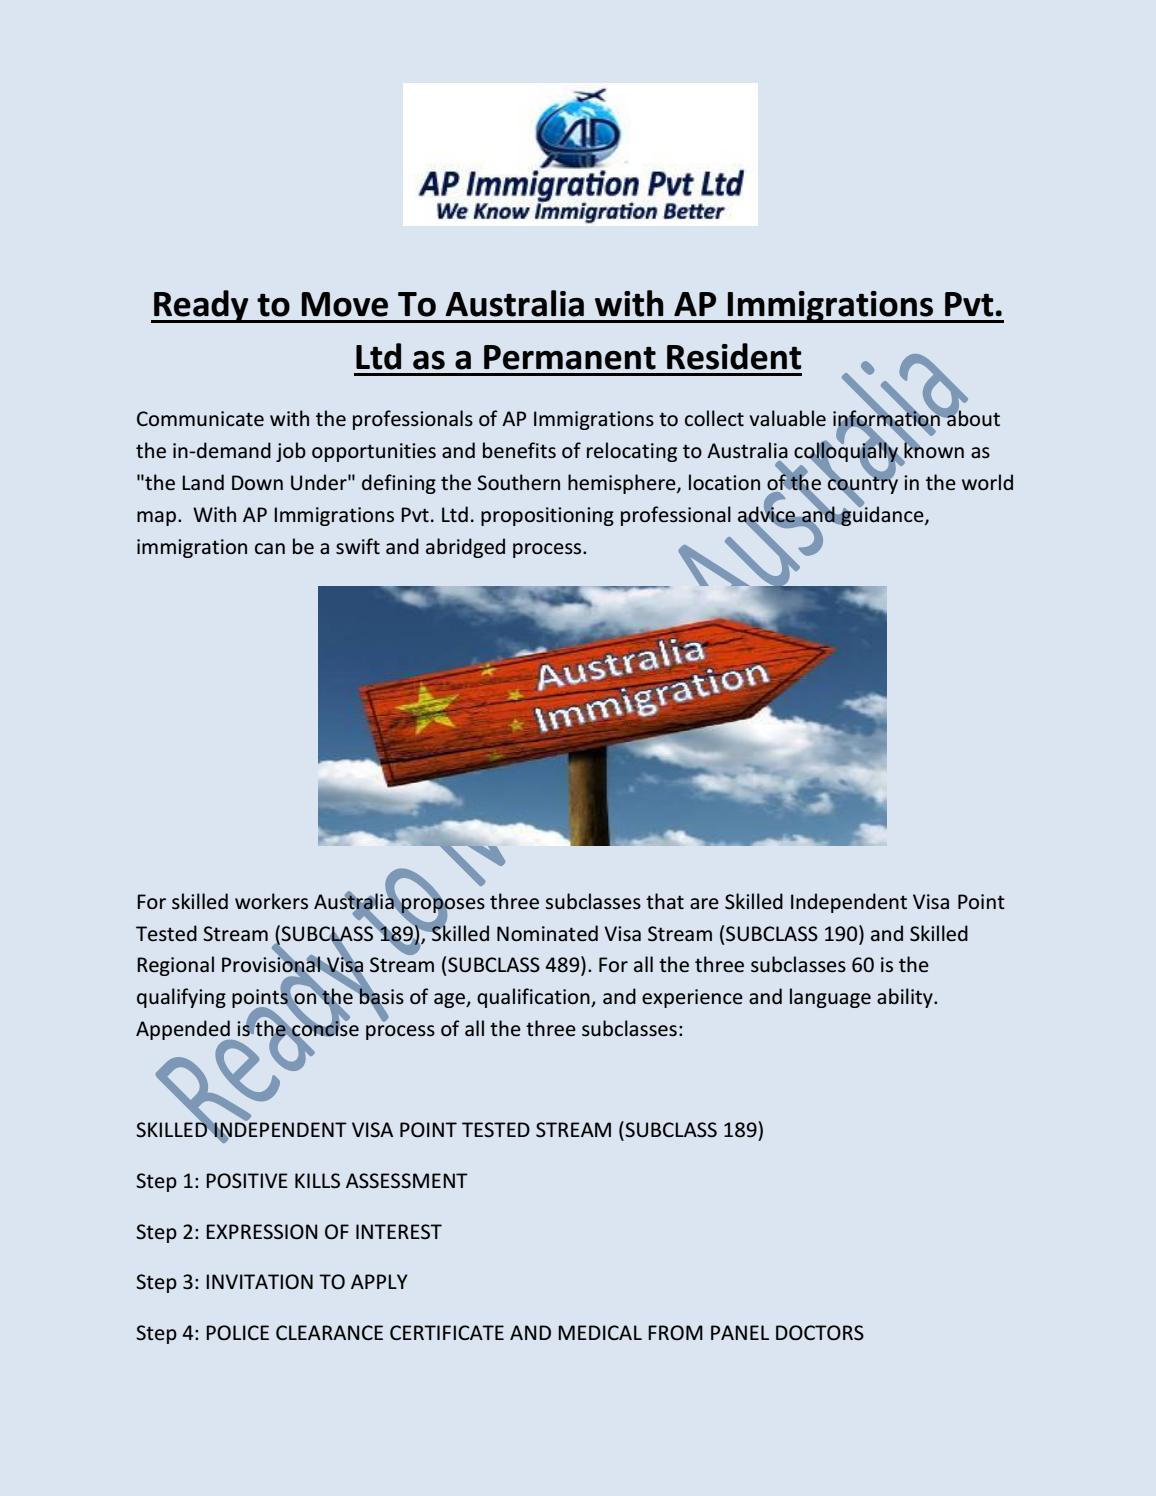 Ready to move to australia with ap immigrations pvt by Shweta